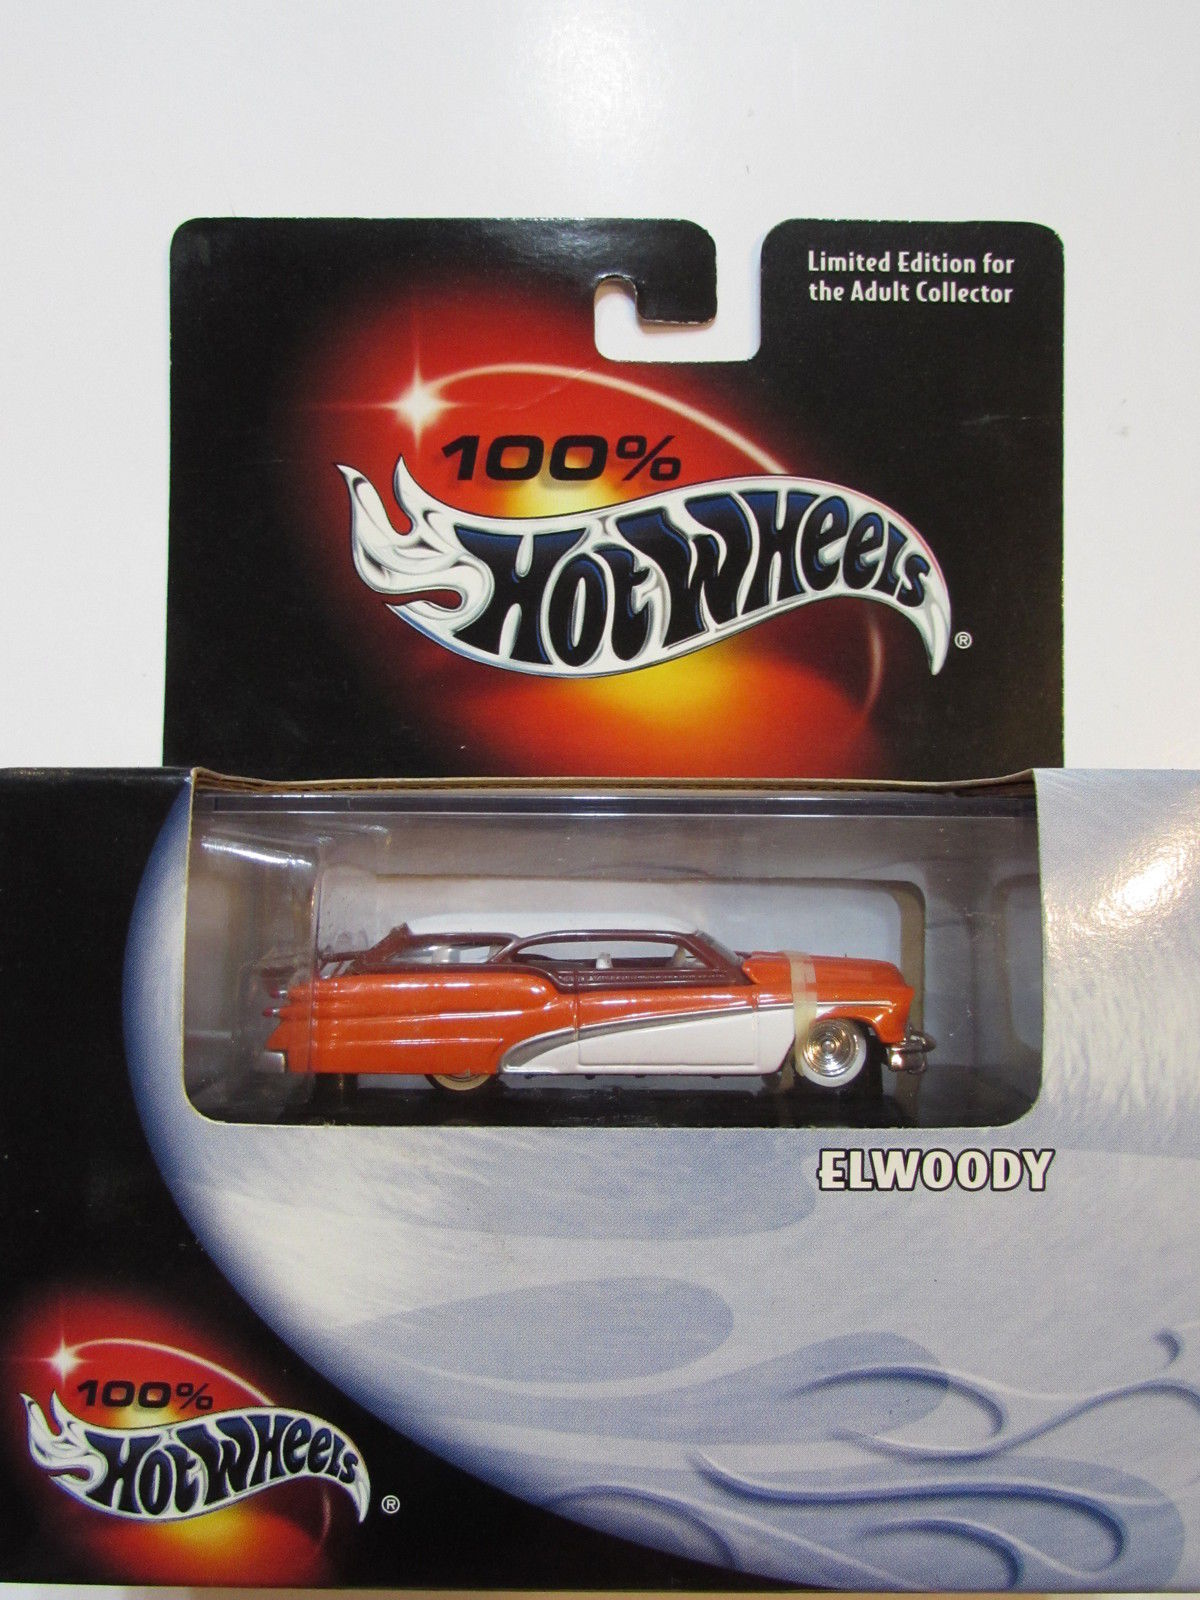 100% HOT WHEELS - ELWOODY SCALE 1:64